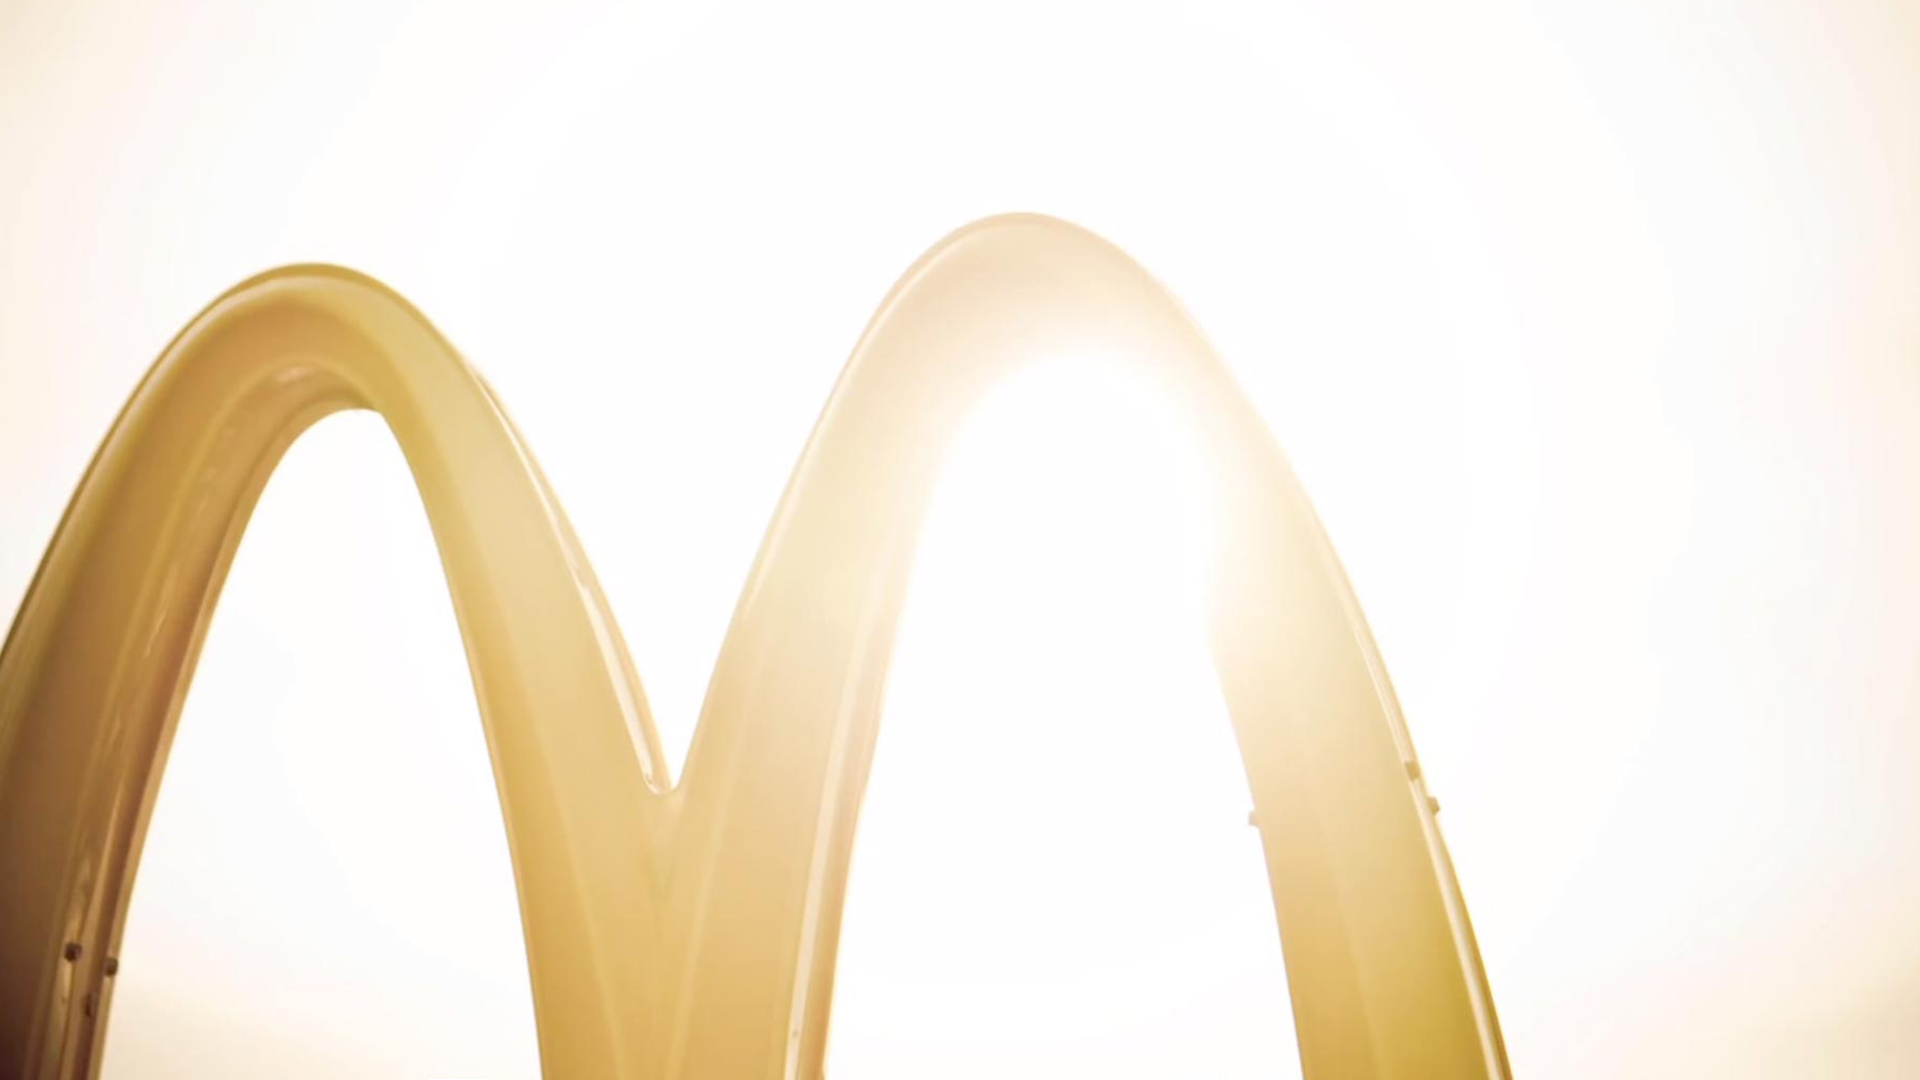 An image of the golden arches of a McDonald's sign.